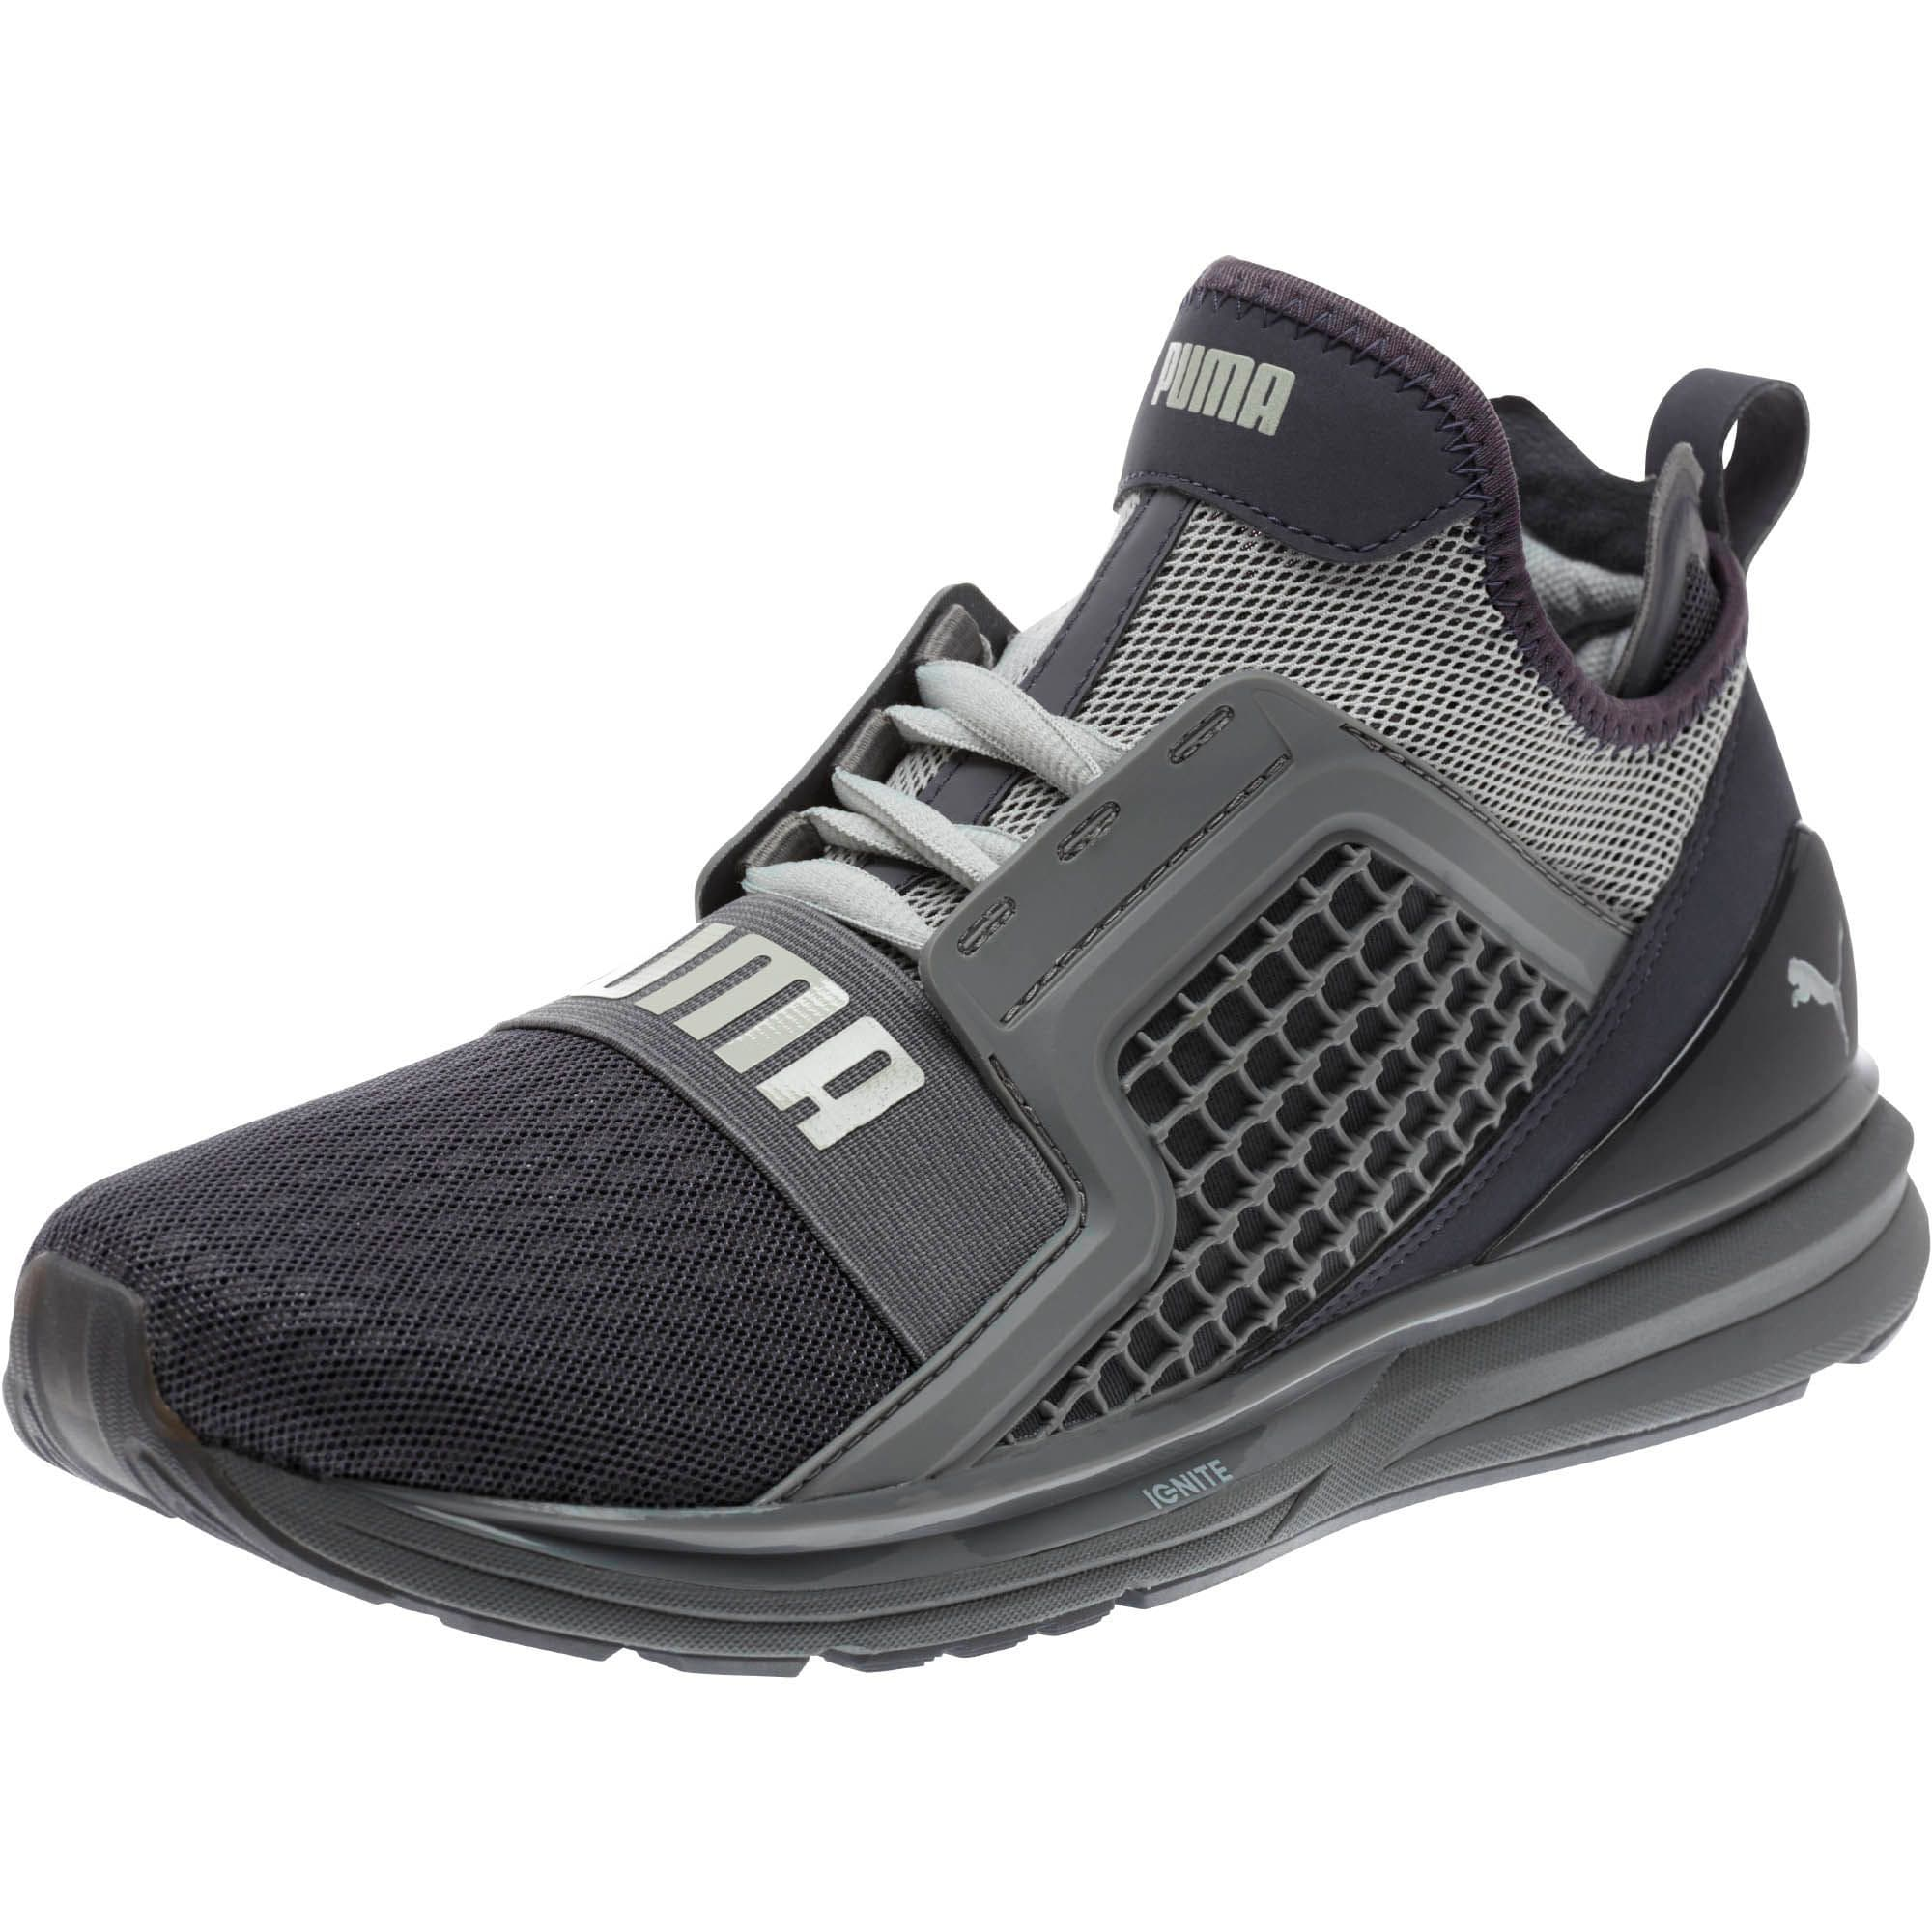 Thumbnail 1 of IGNITE Limitless Men's Running Shoes, Periscope-Gray Violet, medium